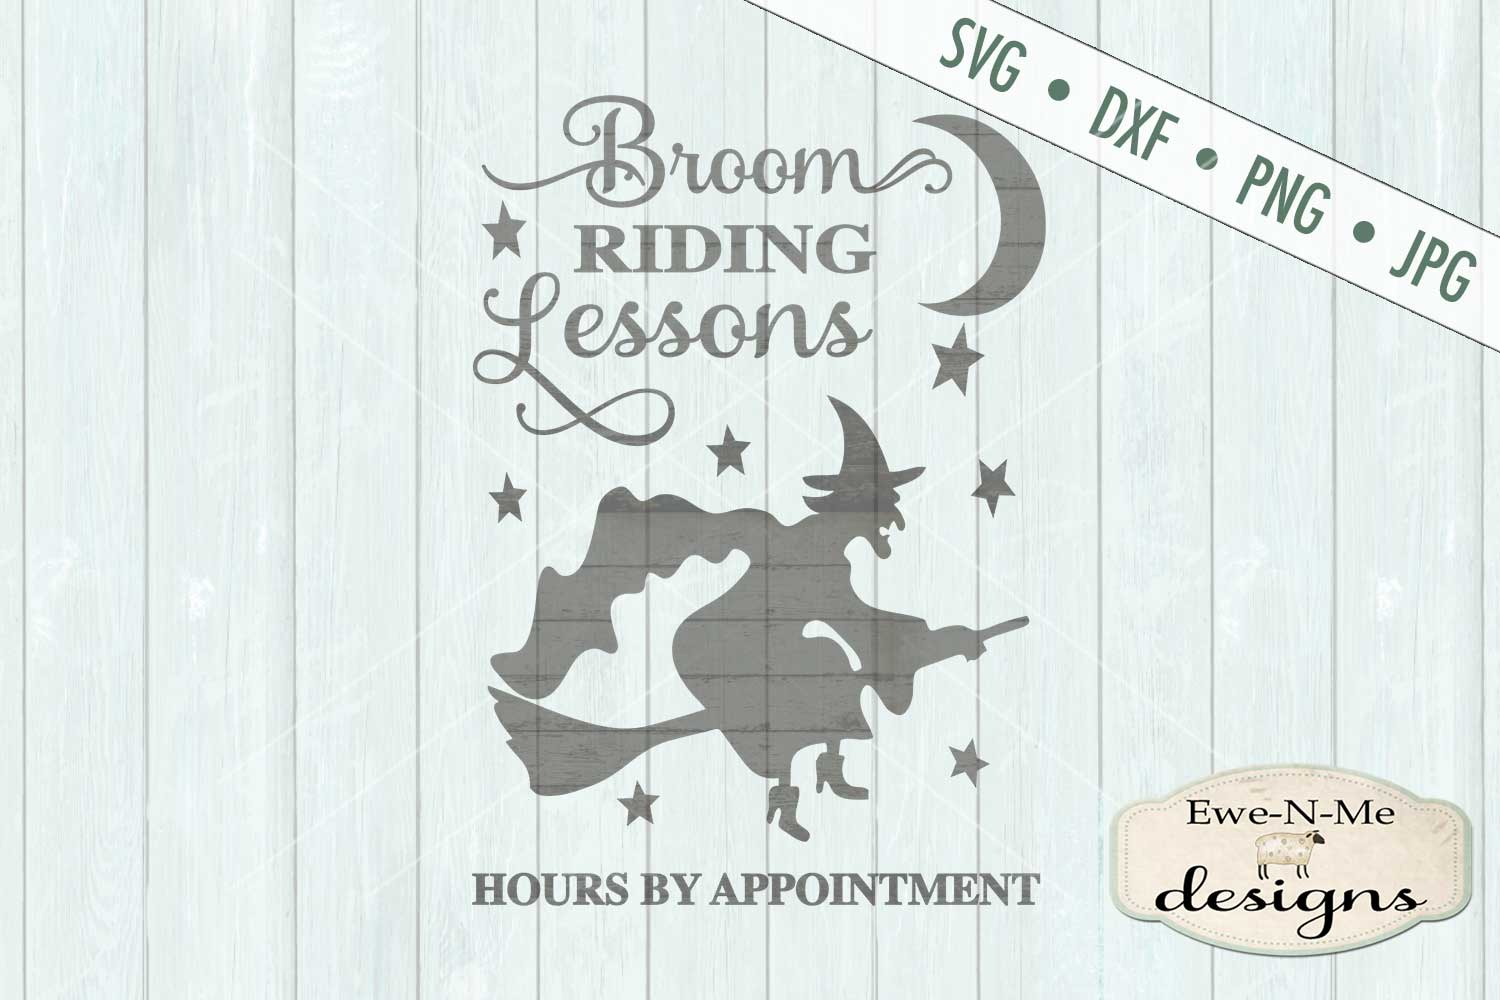 Broom Riding Lessons Witch Halloween SVG DXF Files example image 2